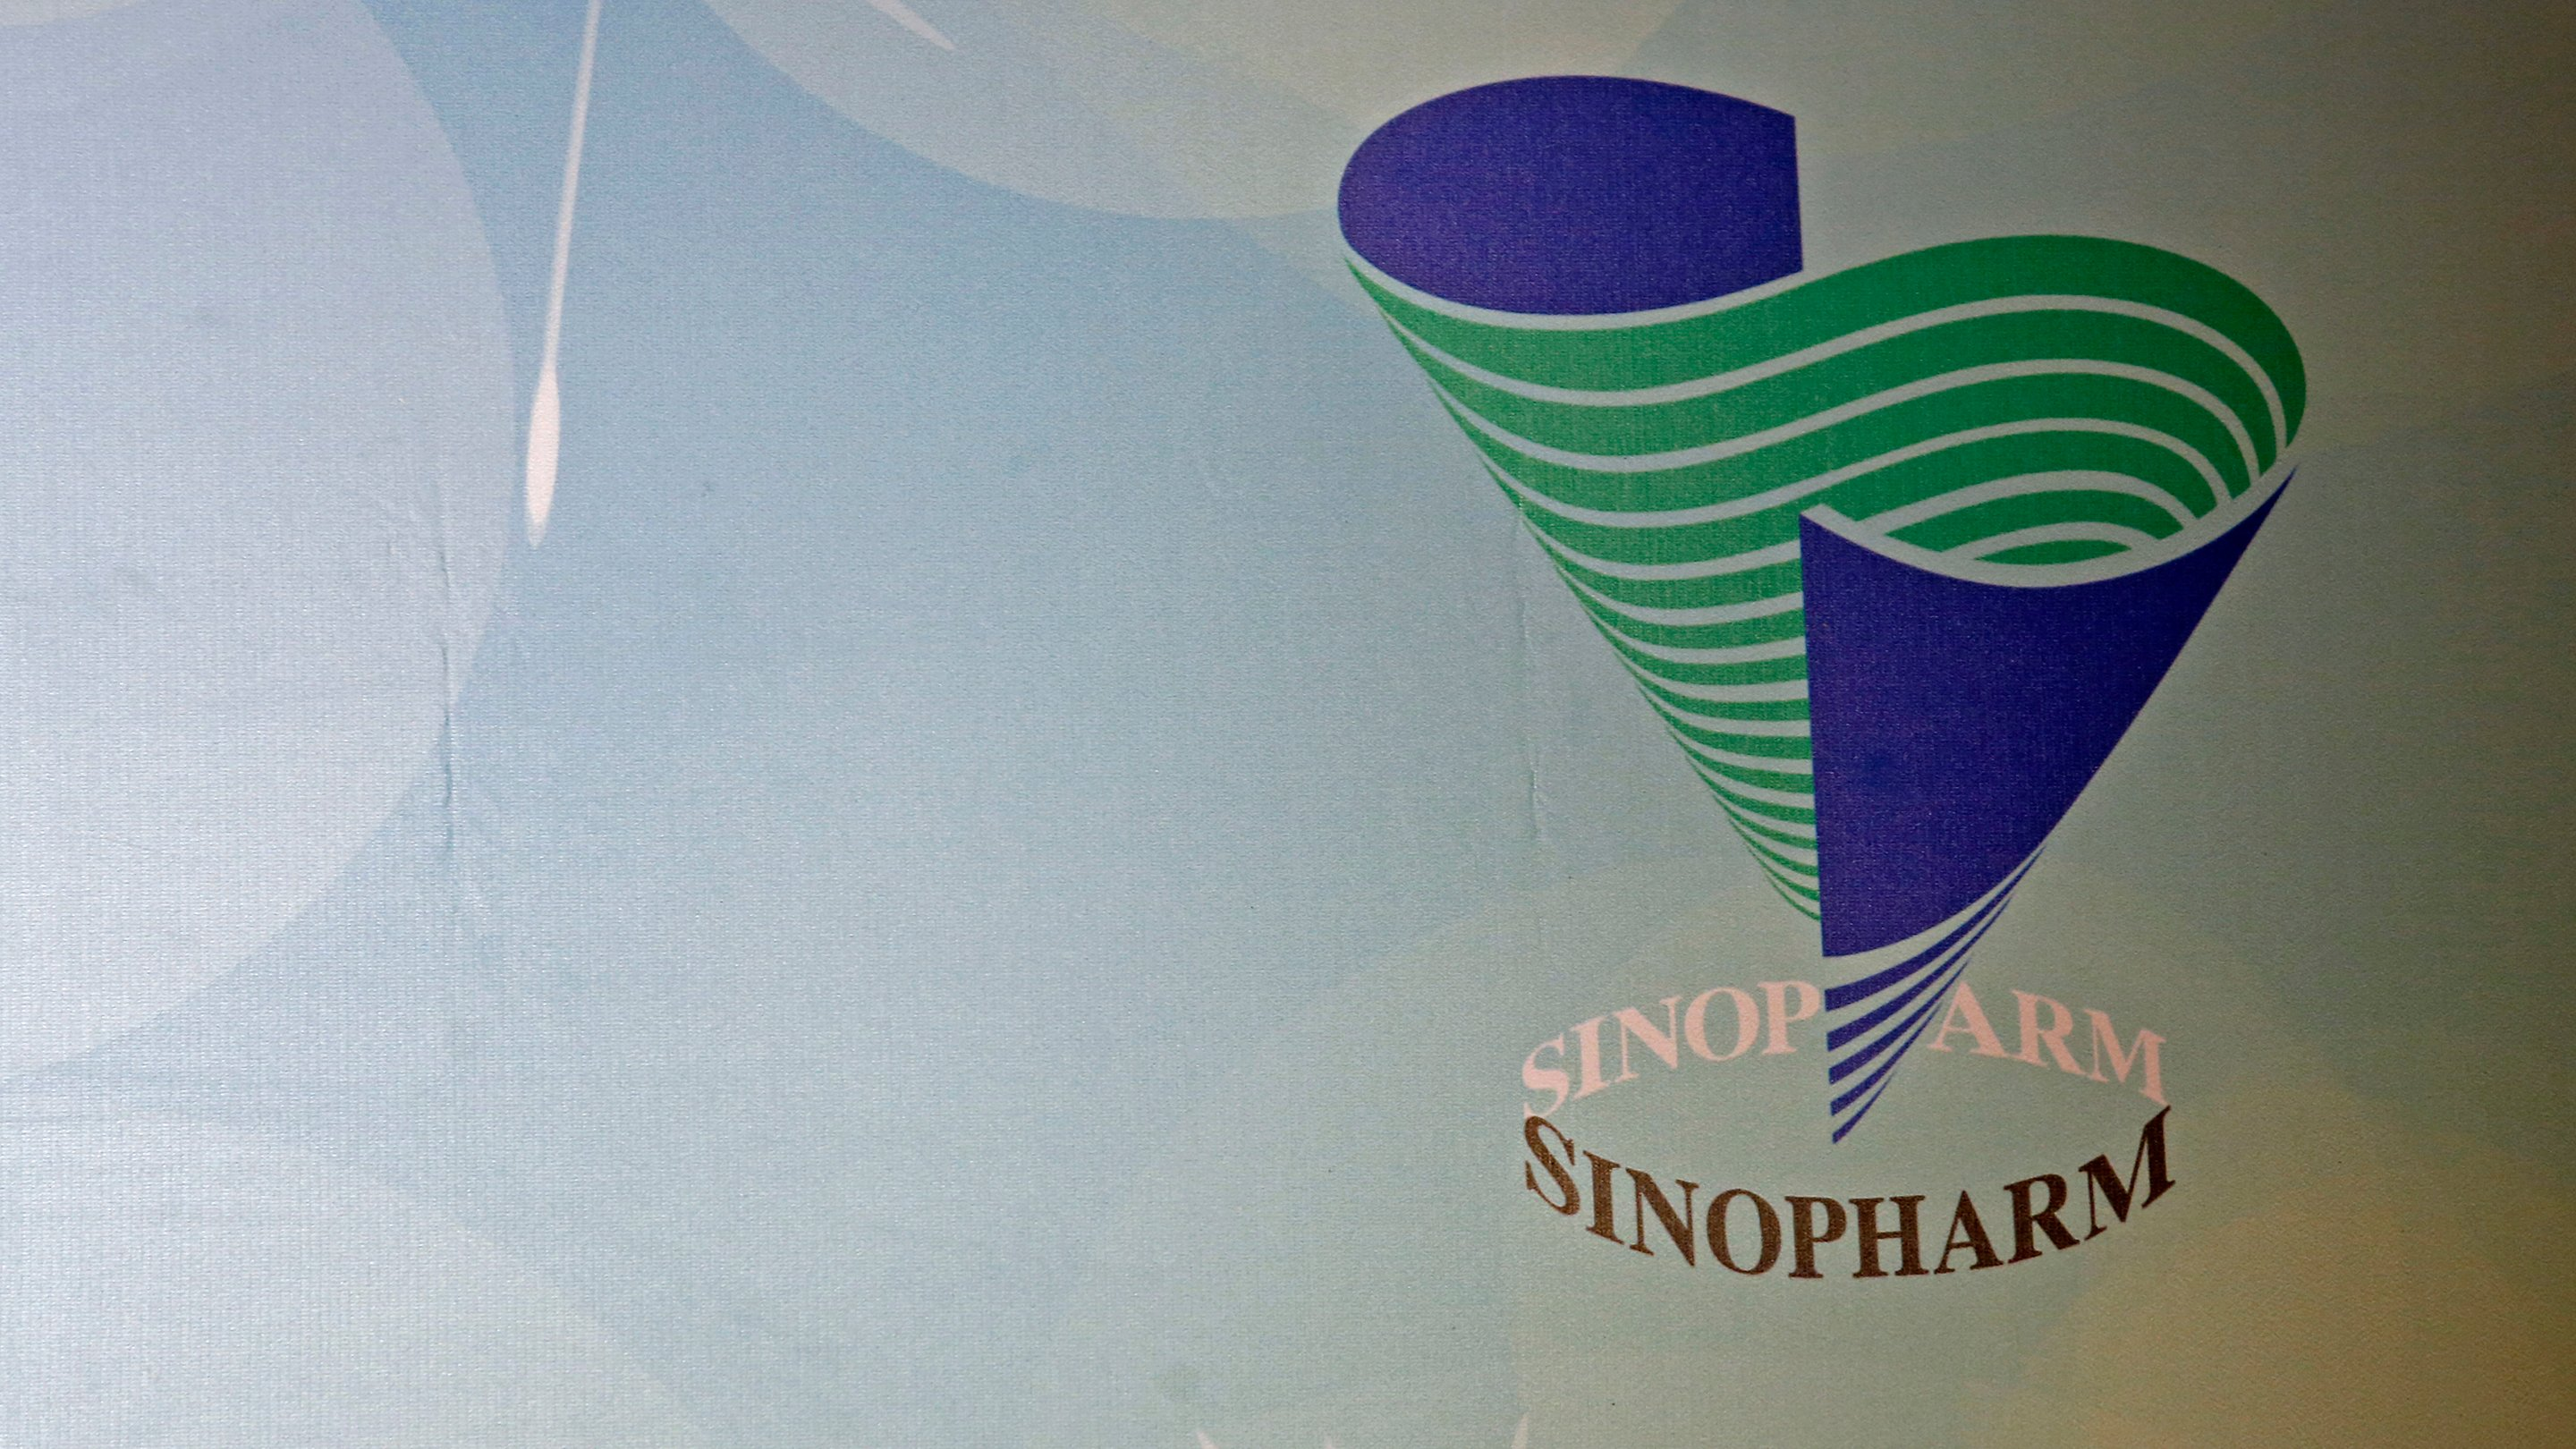 Sinopharm Logo - Sinopharm Financials and News | Global 500